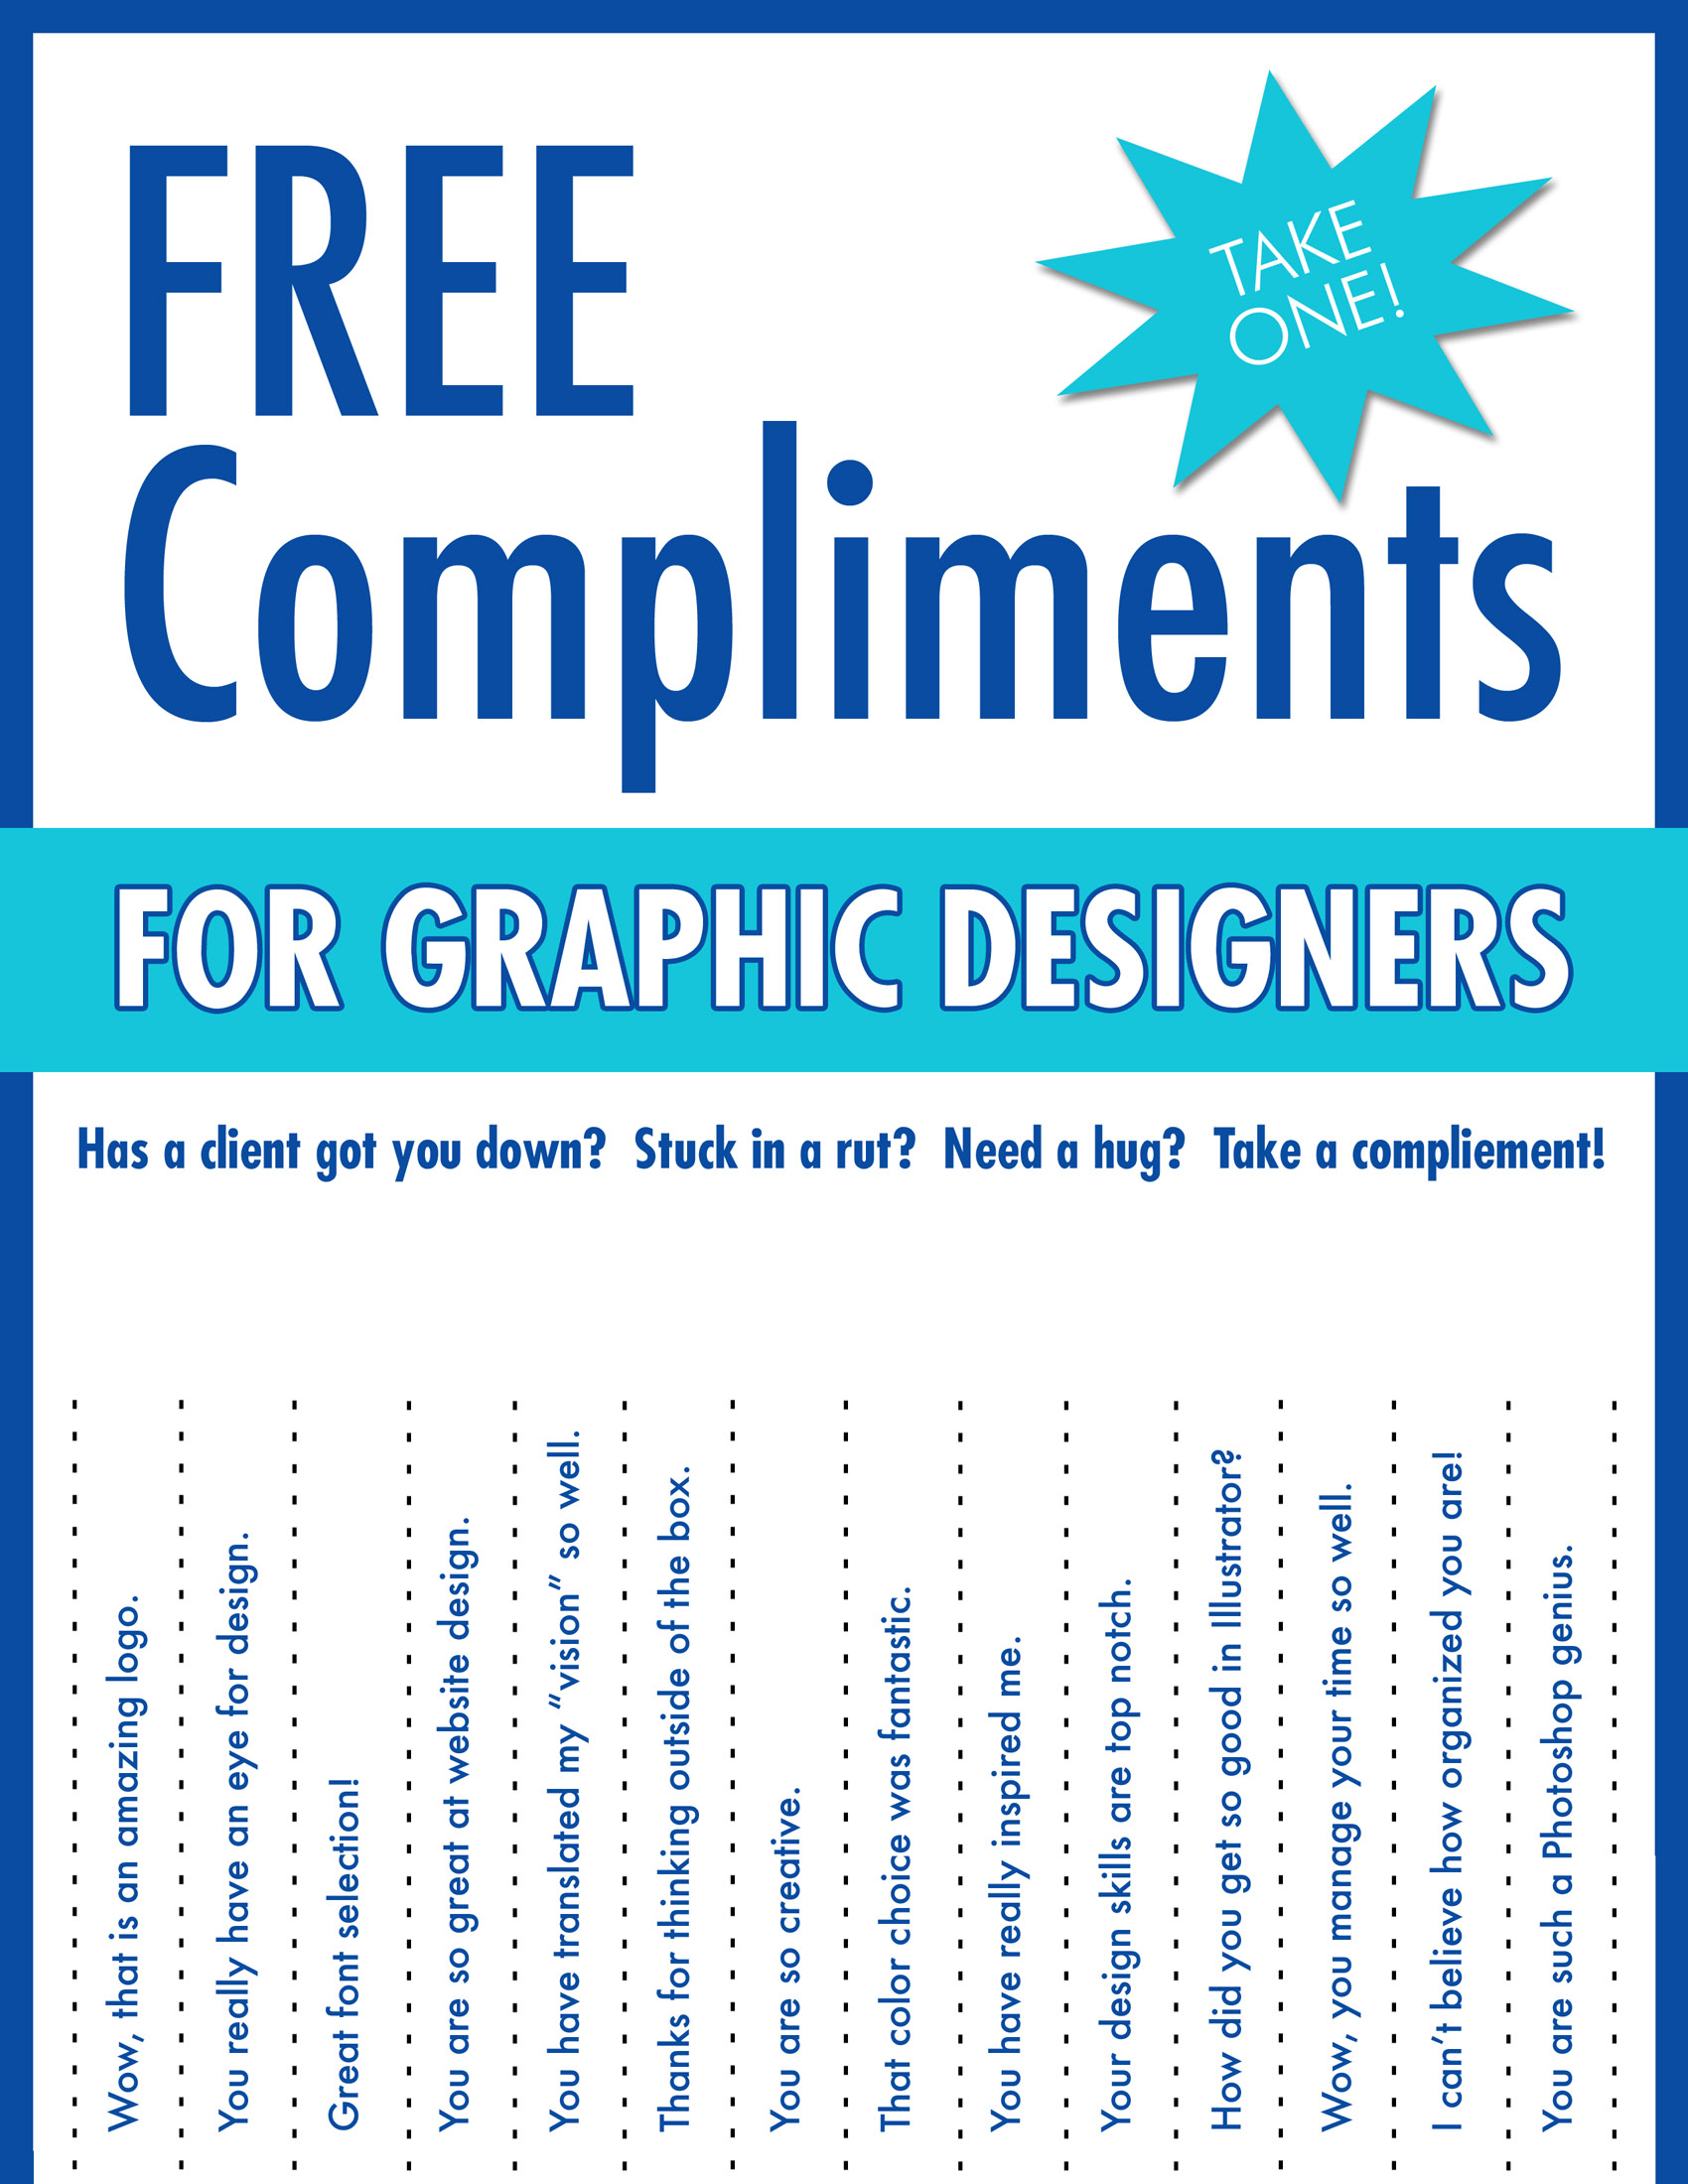 Free Compliments For Graphic Designers | The Creative Stack